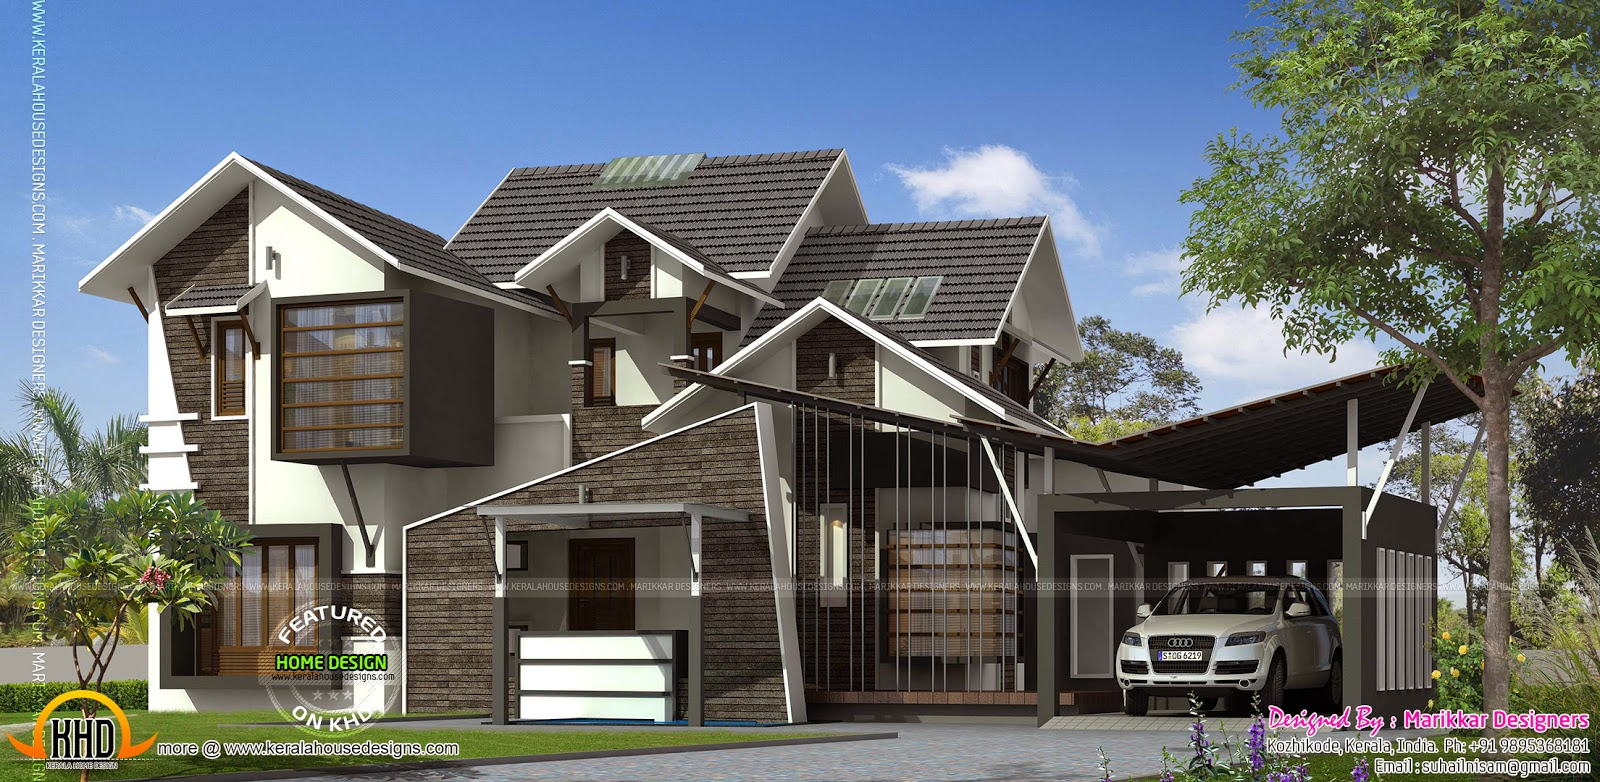 Ultra contemporary house kerala home design and floor plans for Super modern house design